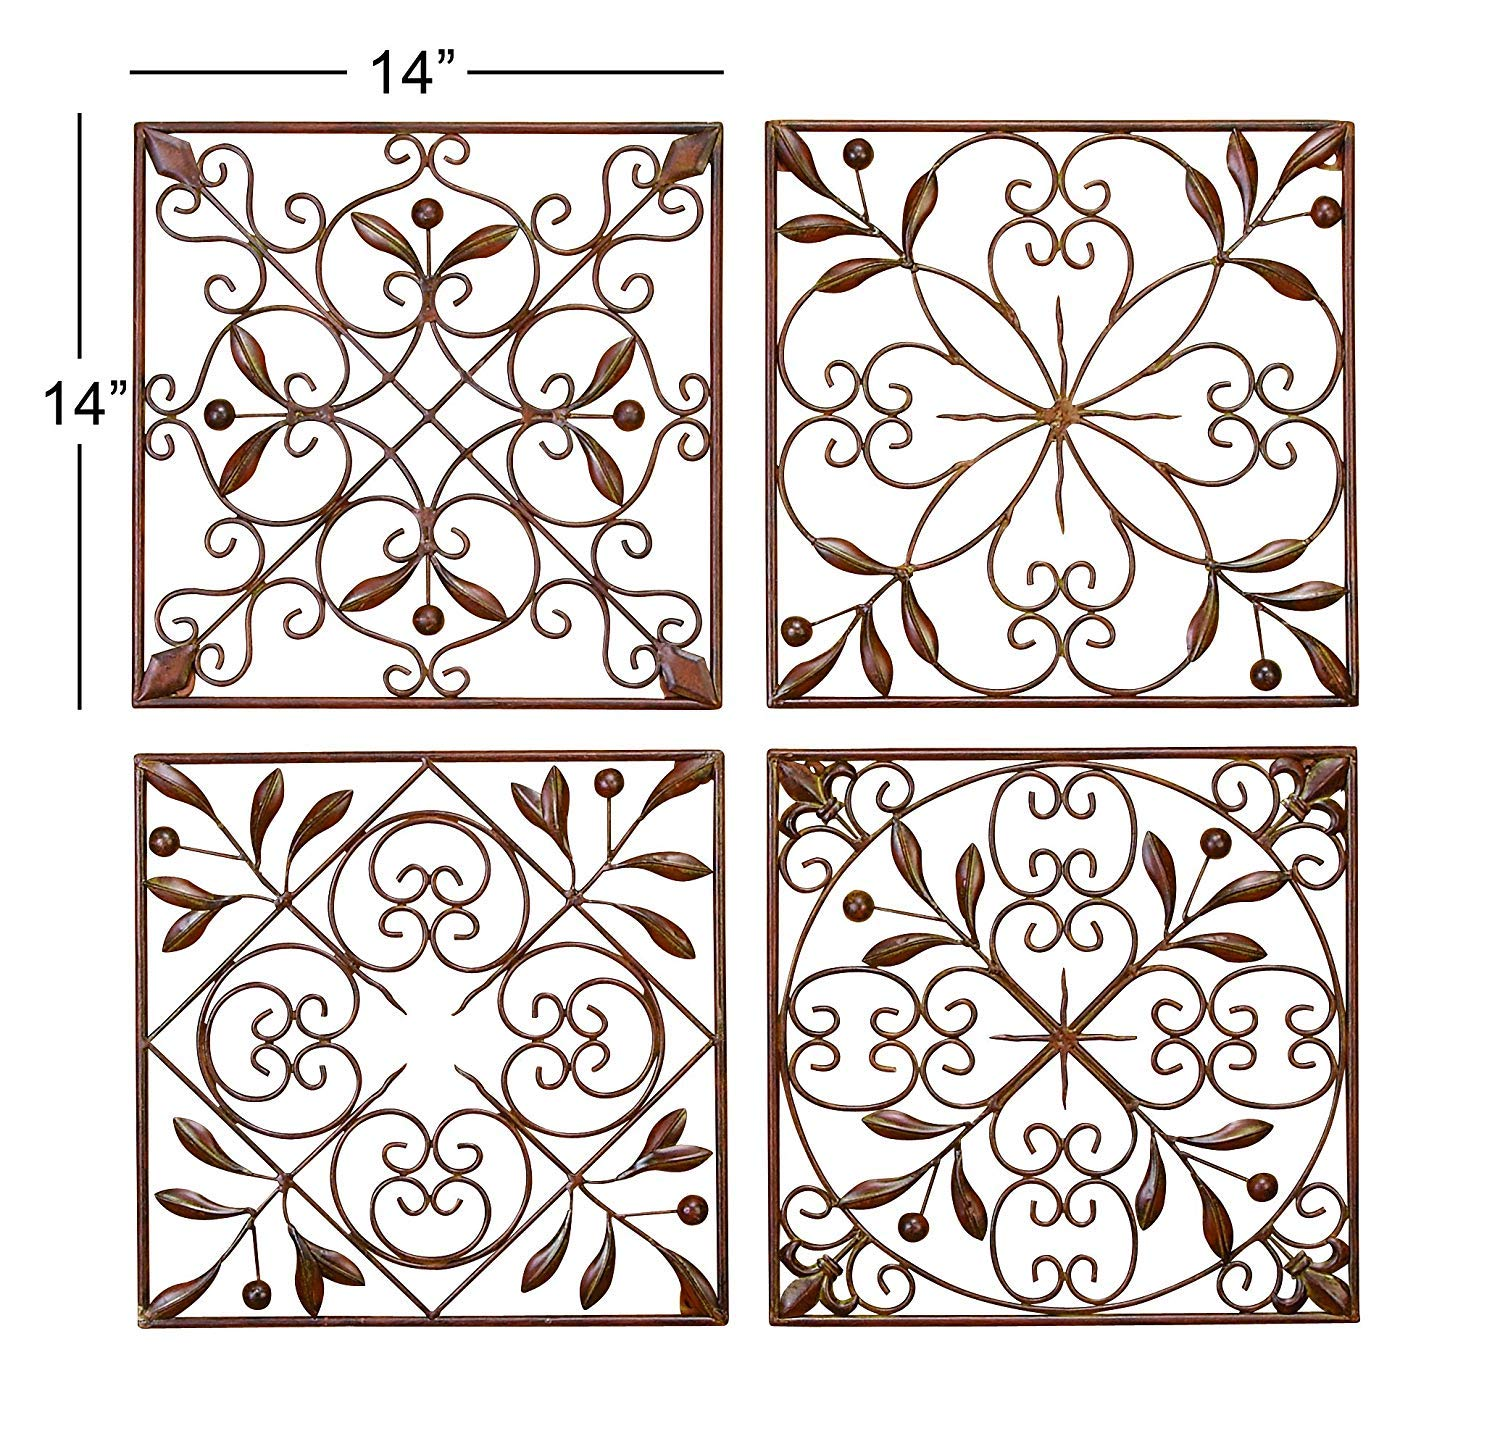 Deco 79 50035 Metal Wall Decor Set of 4 by Deco 79